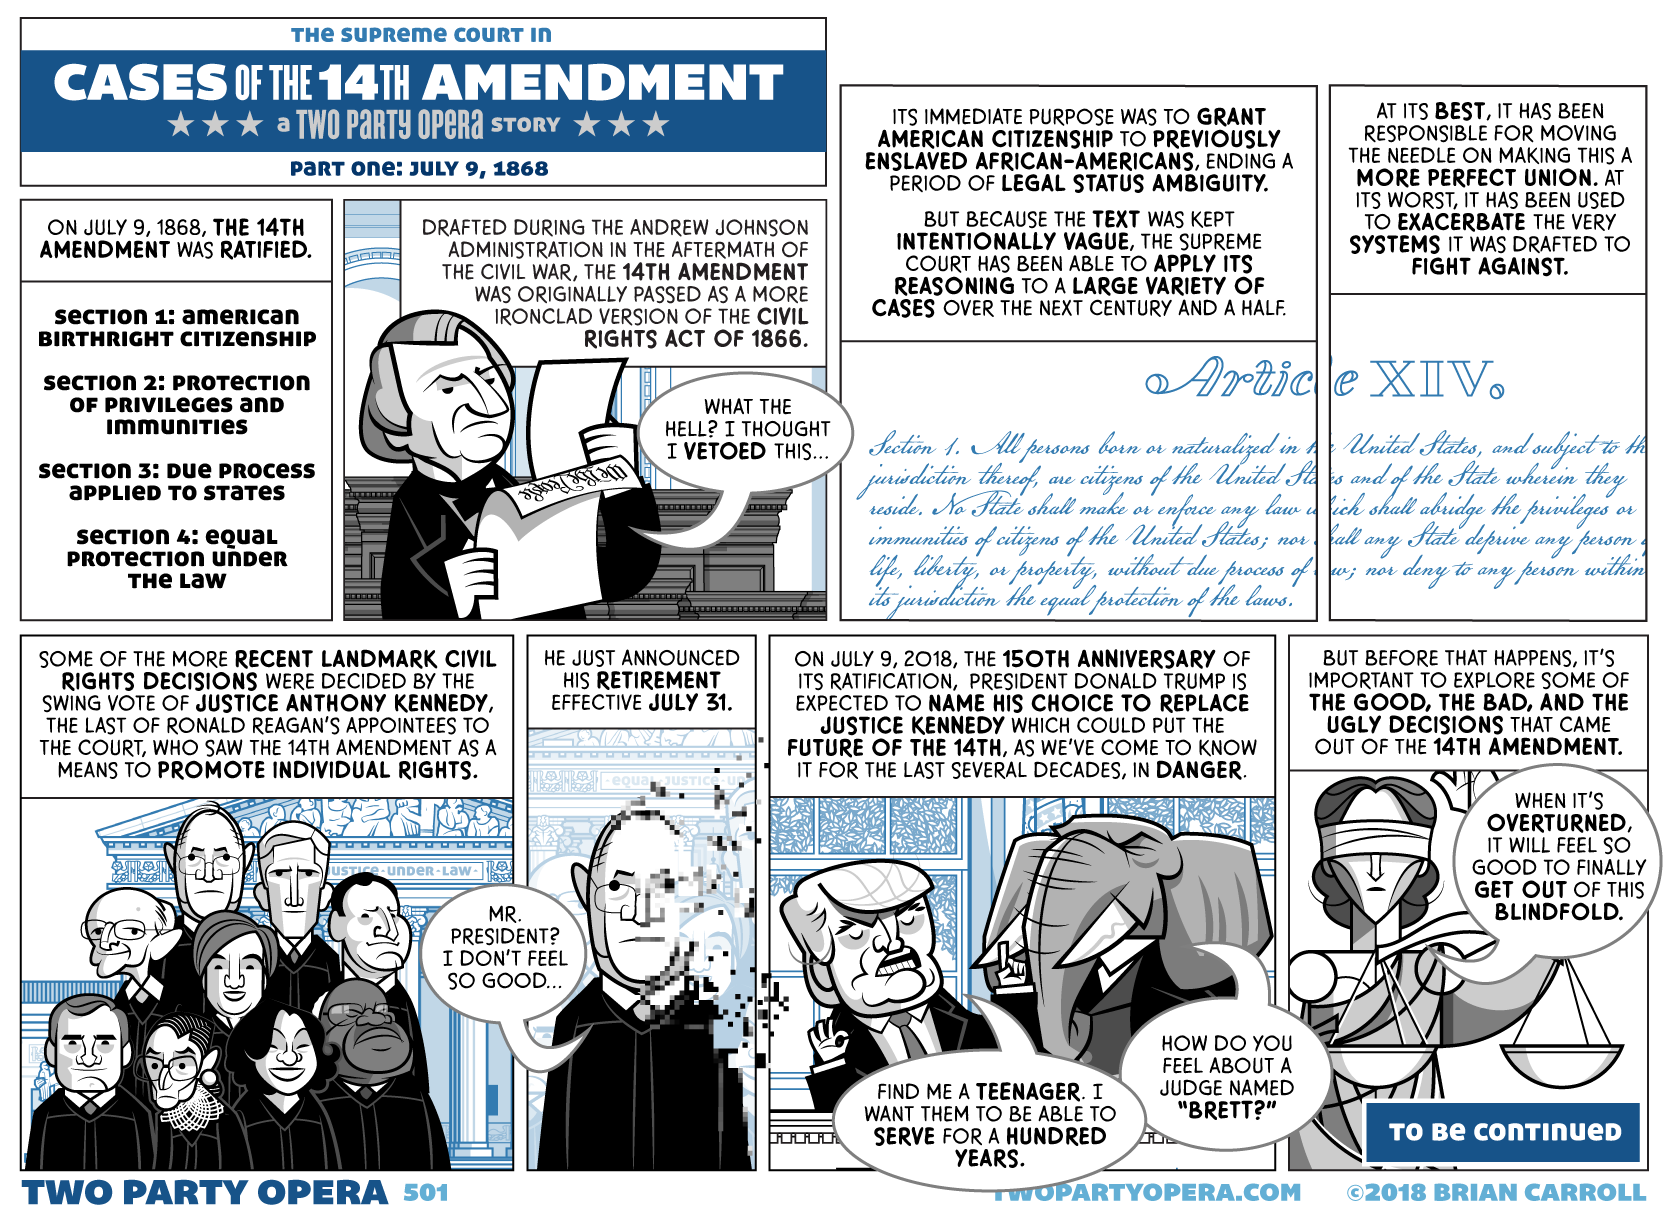 Cases of the 14th Amendment – Part One: July 9, 1868